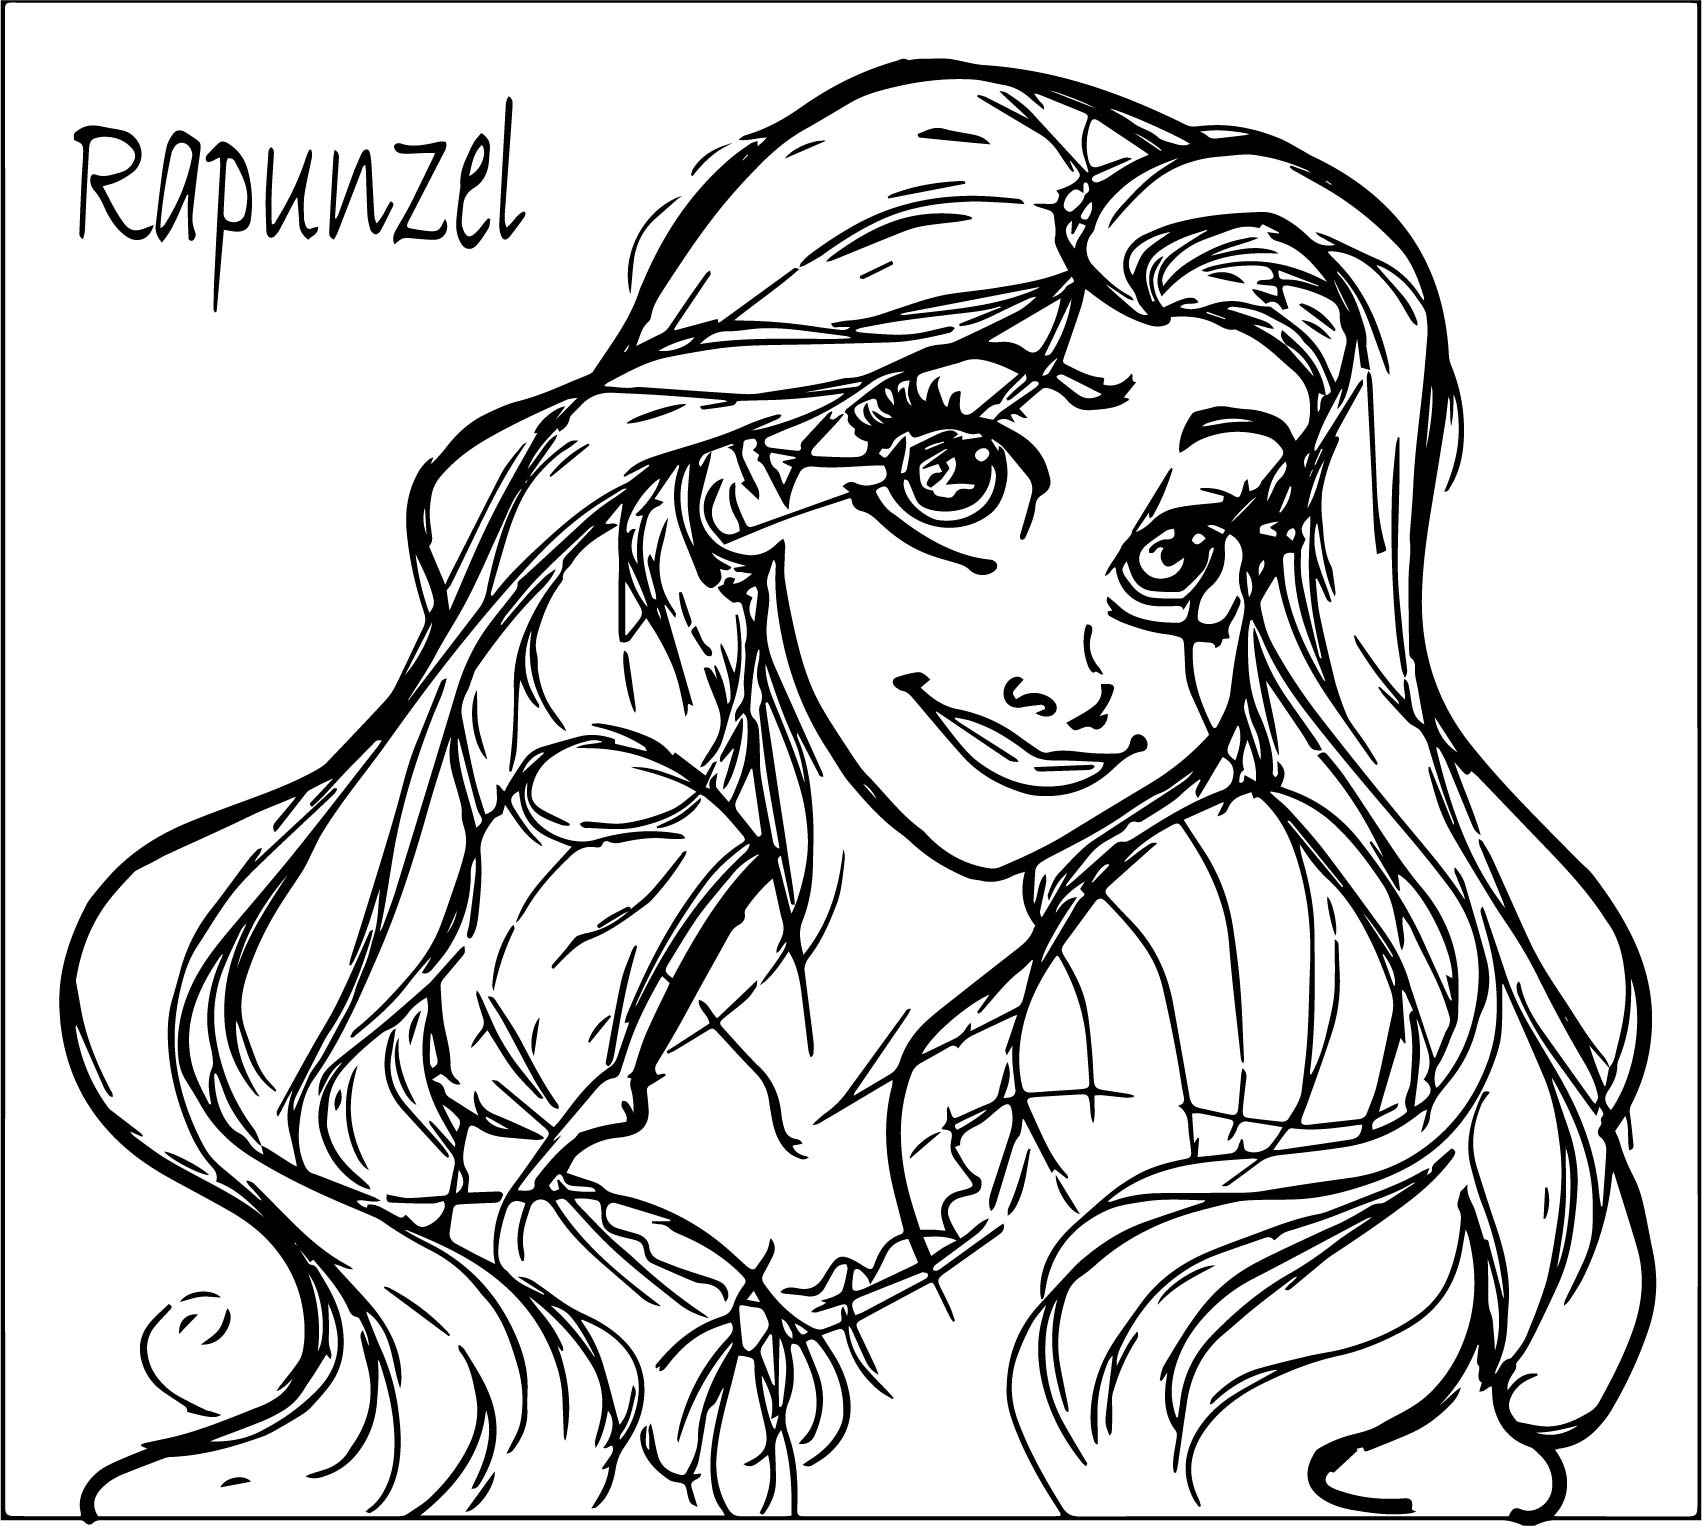 Disney Rapunzel From Tangled Coloring Page Wecoloringpage